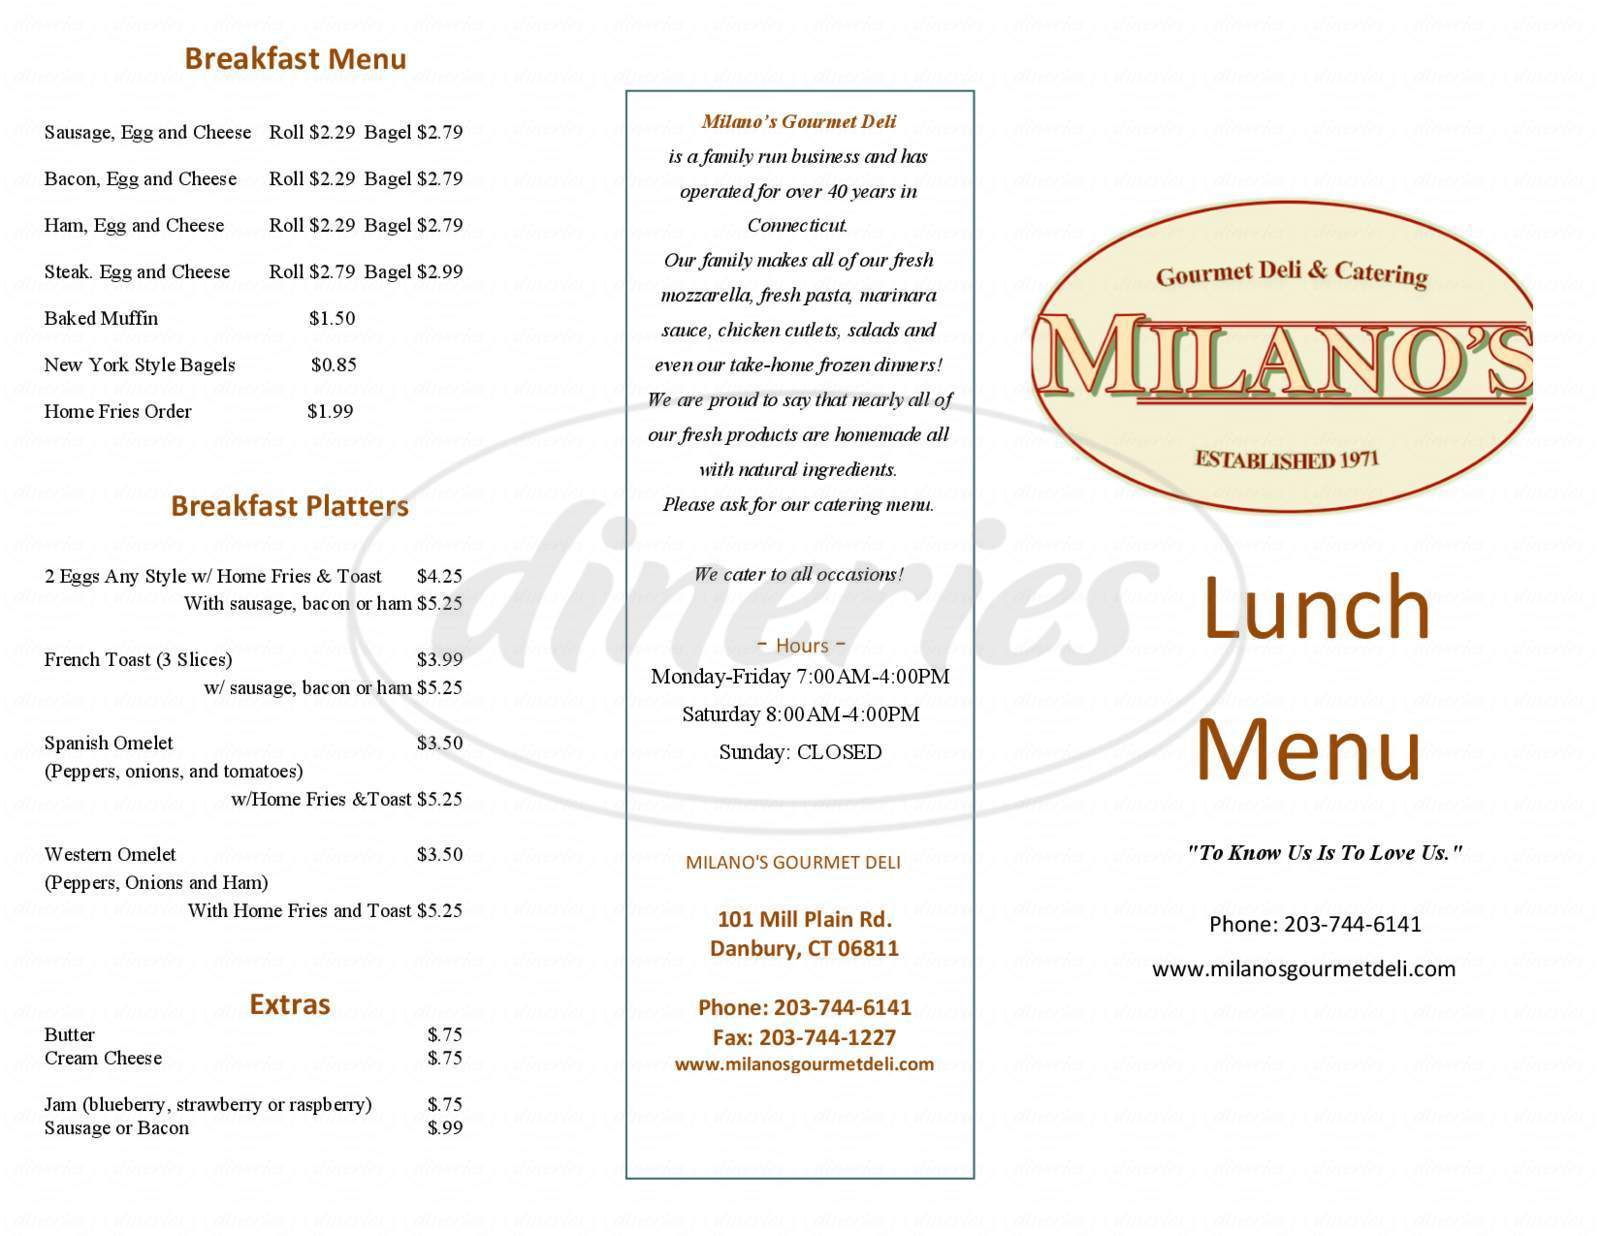 menu for Milano's Gourmet Deli & Catering